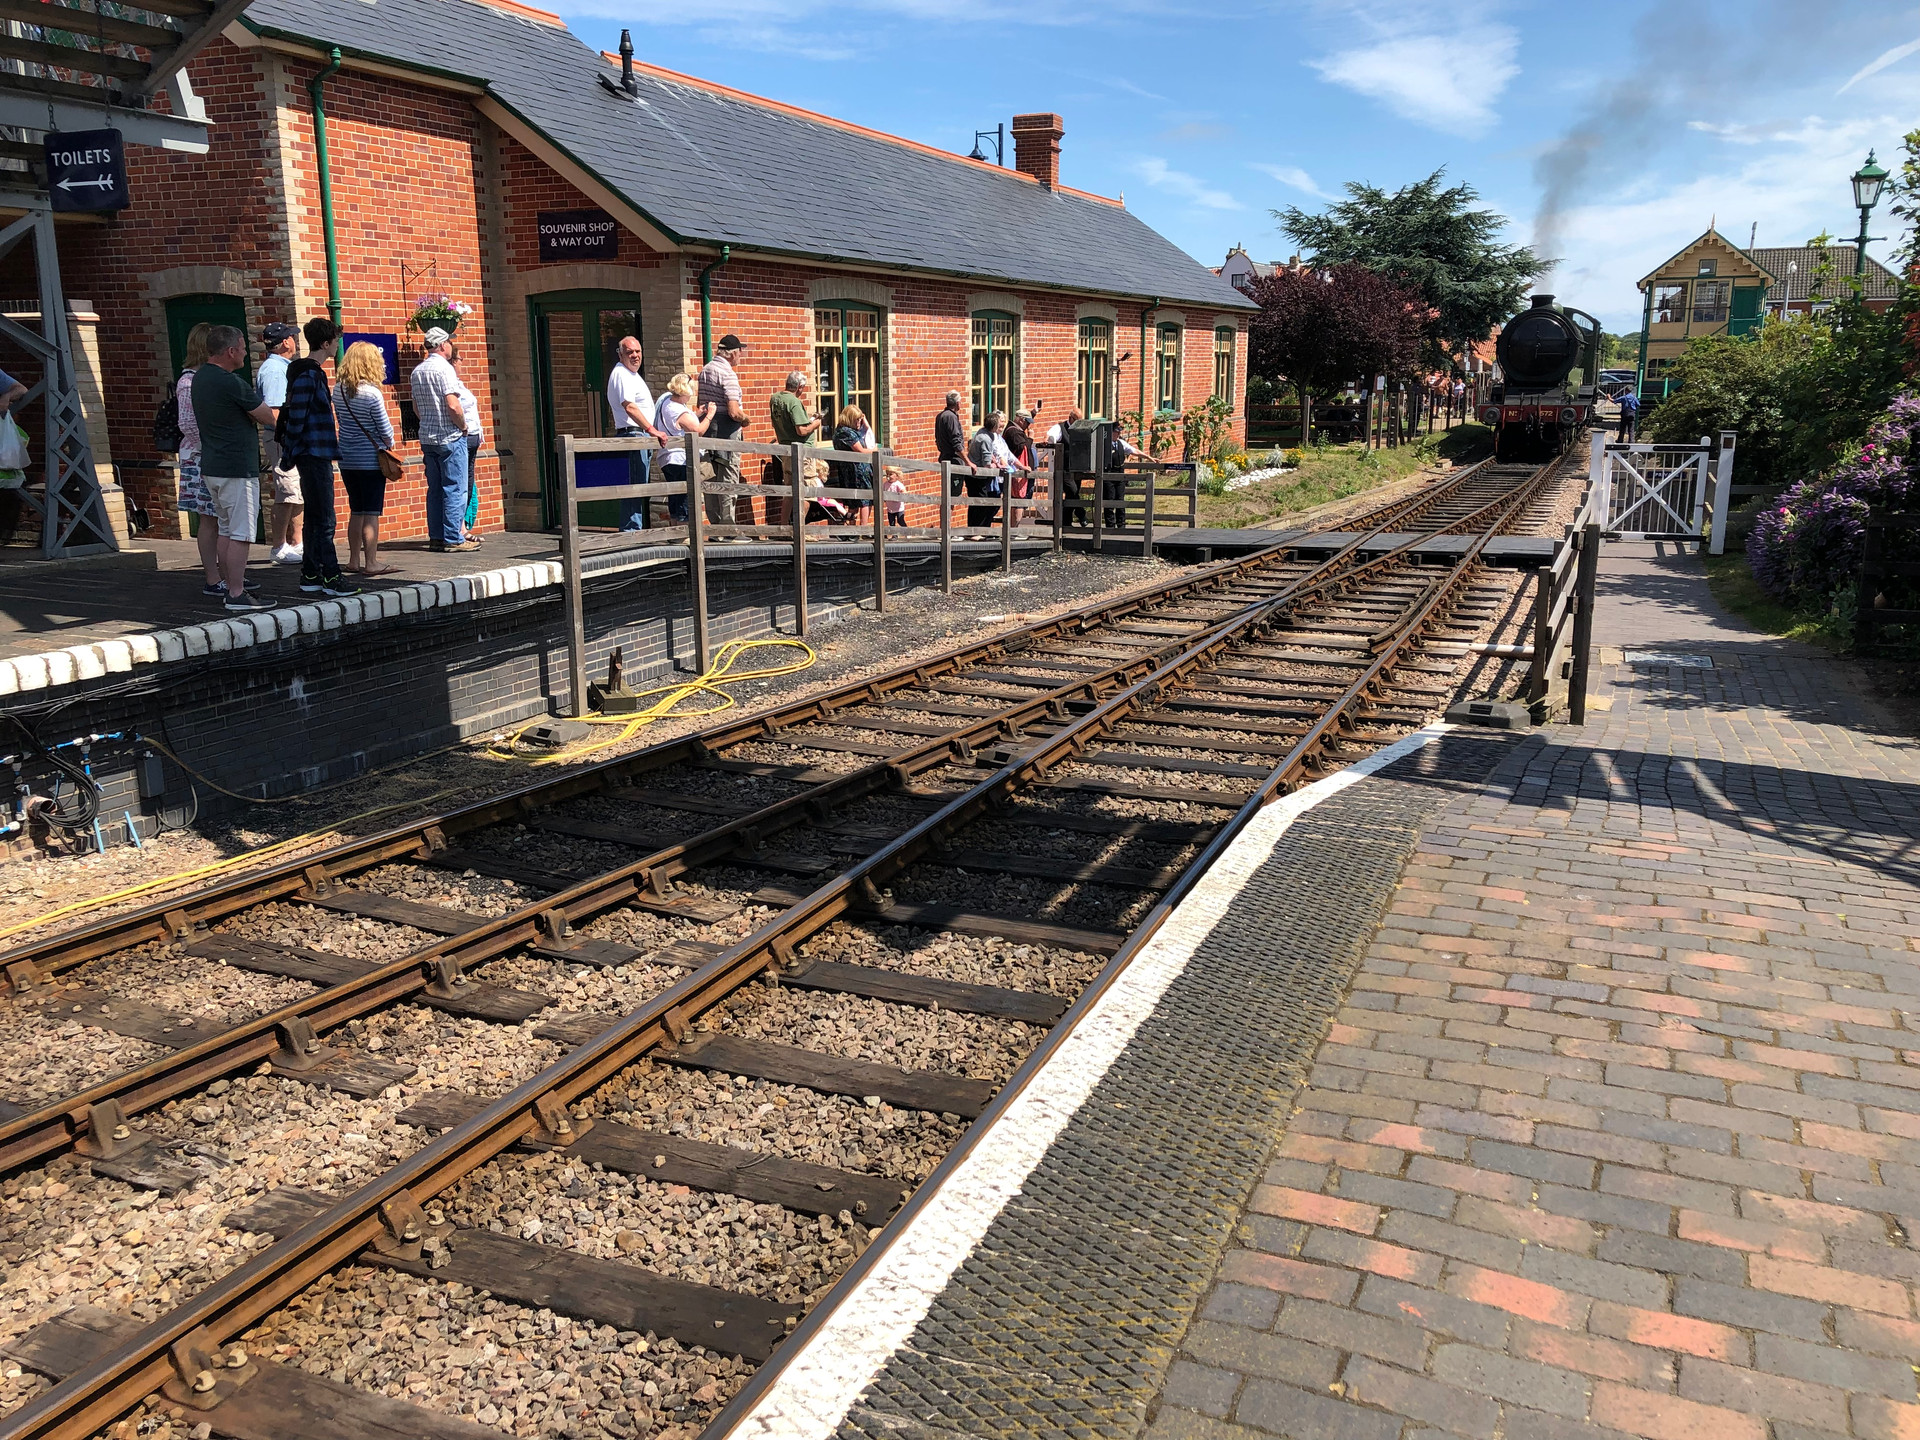 NORTH NORFOLK RAILWAY SHERINGHAM